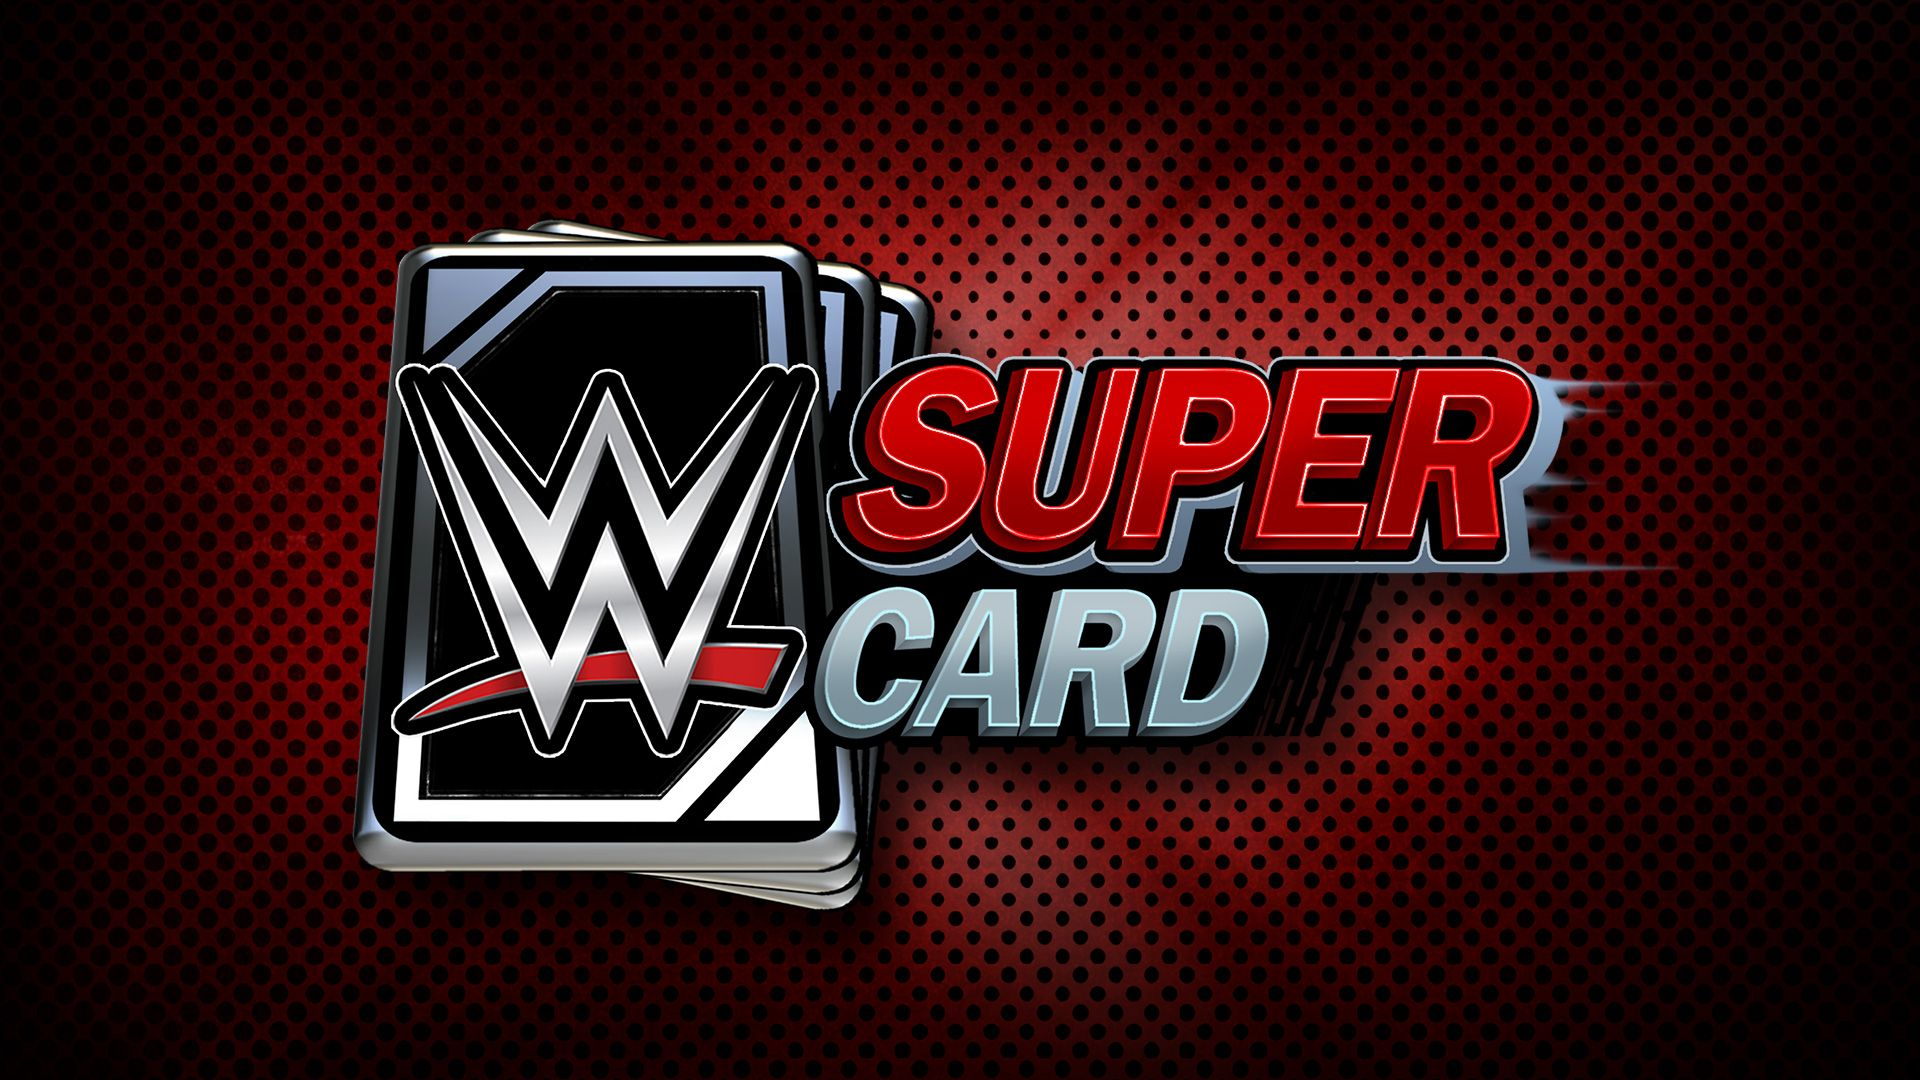 Wwe Supercard Update To Add Raw Smackdown Live Wwe Cheating News Games